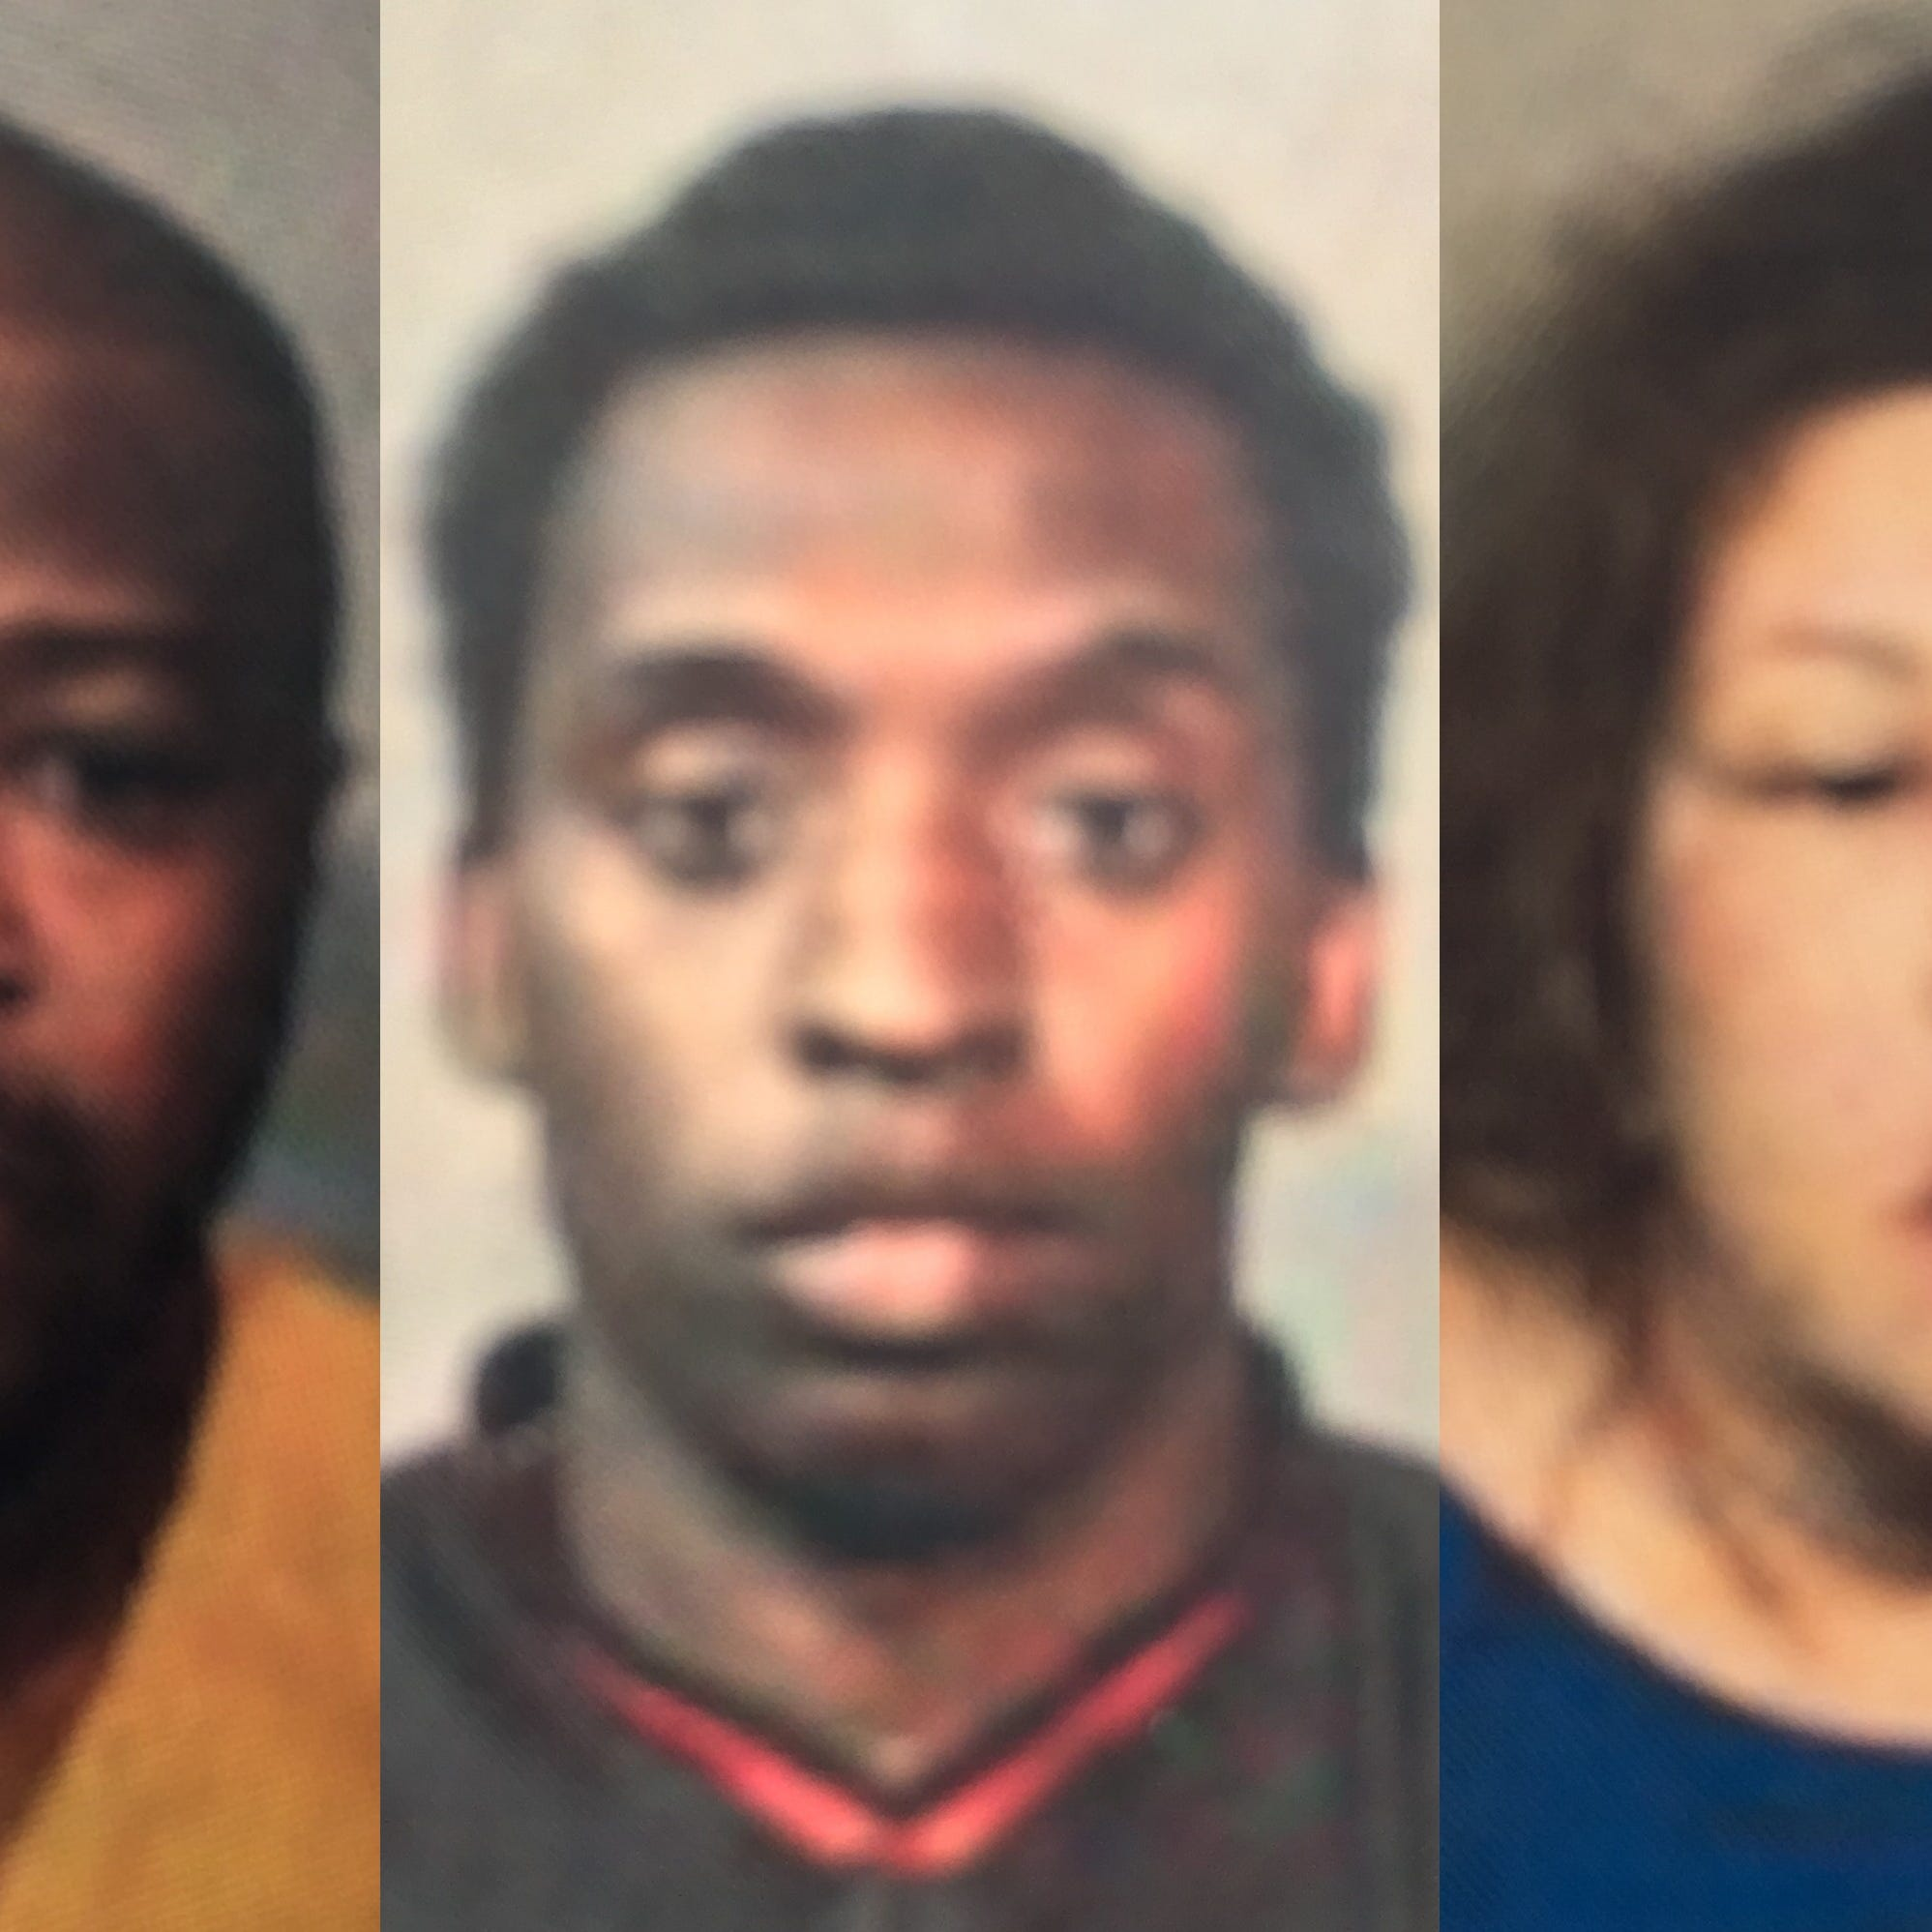 3 accused of planting fake devices at schools to distract from robberies